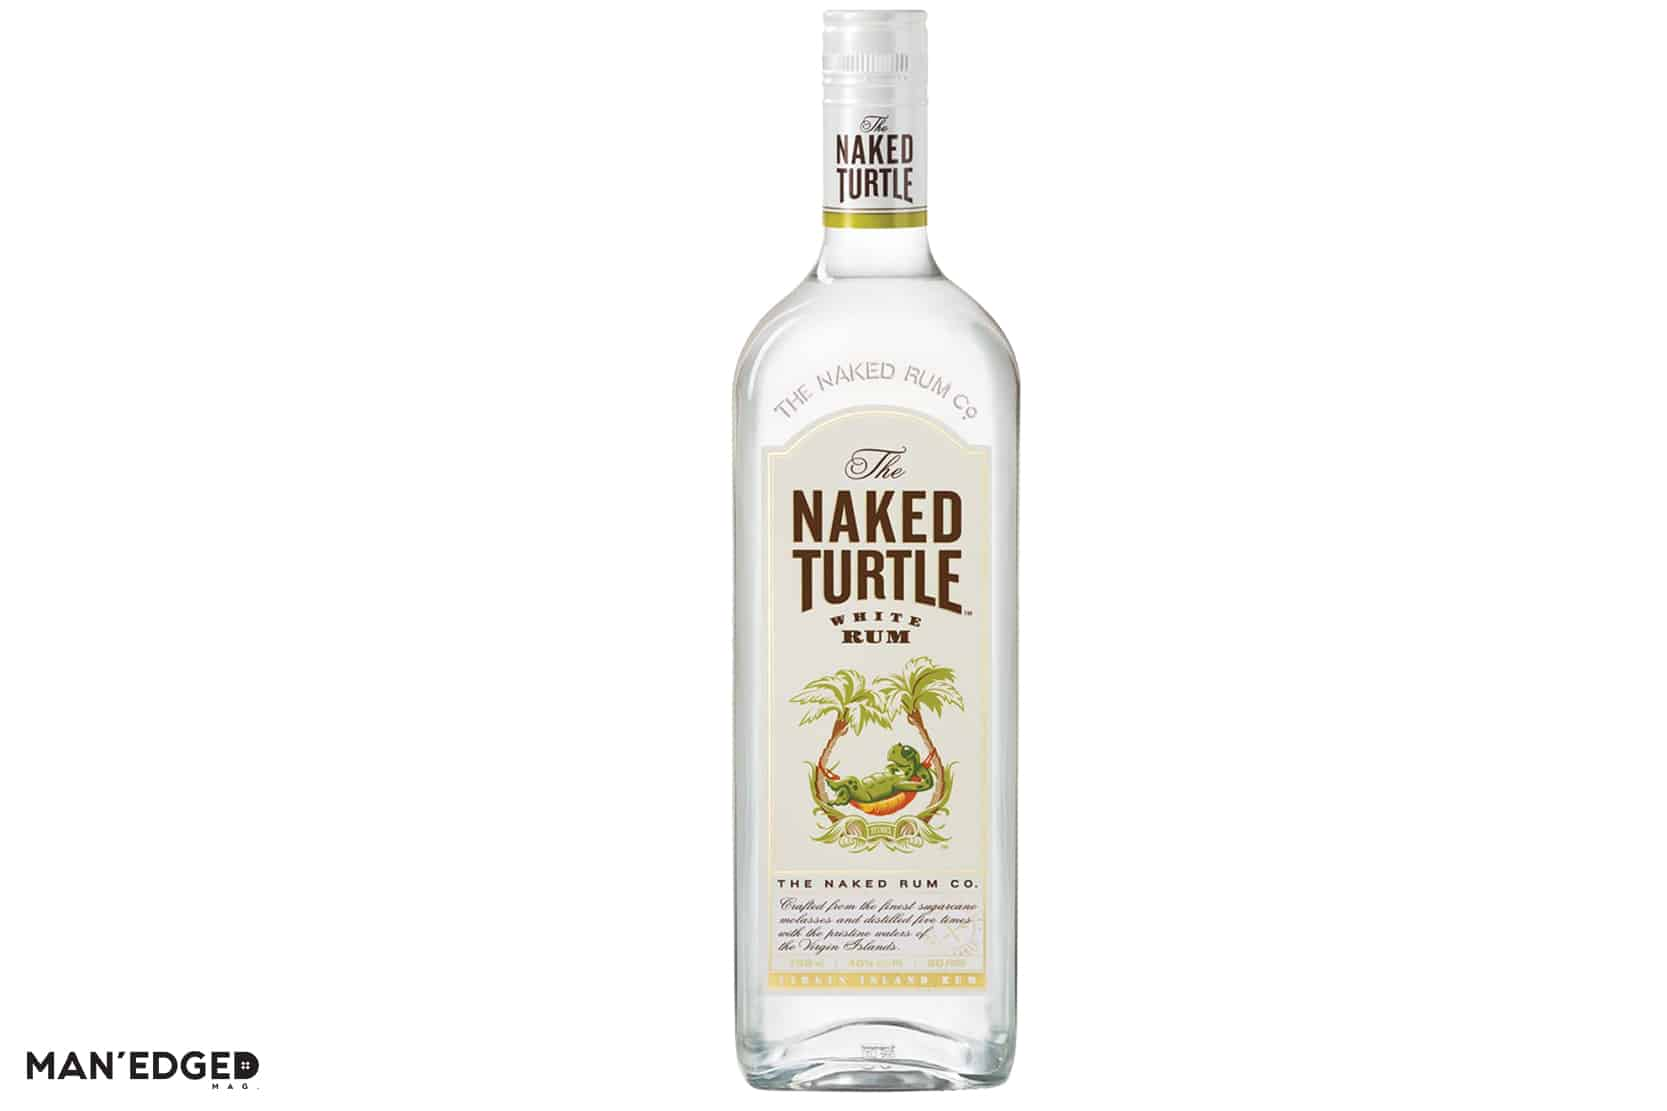 Gift ideas for the Health Expert Guy featuring Naked Turtle Rum